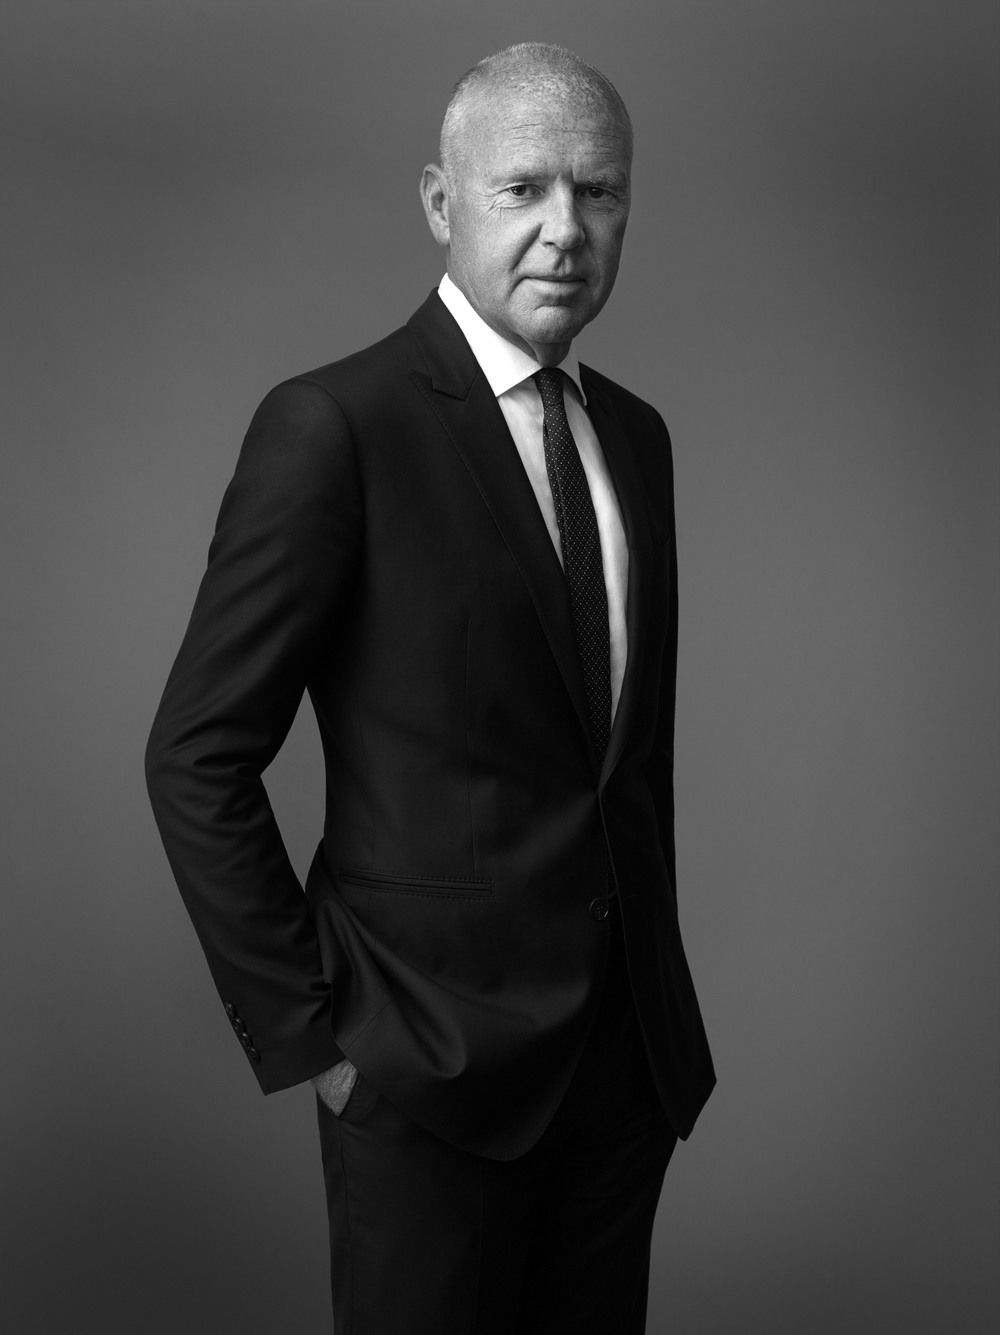 Garry Hogarth, Agent Provocateur CEO